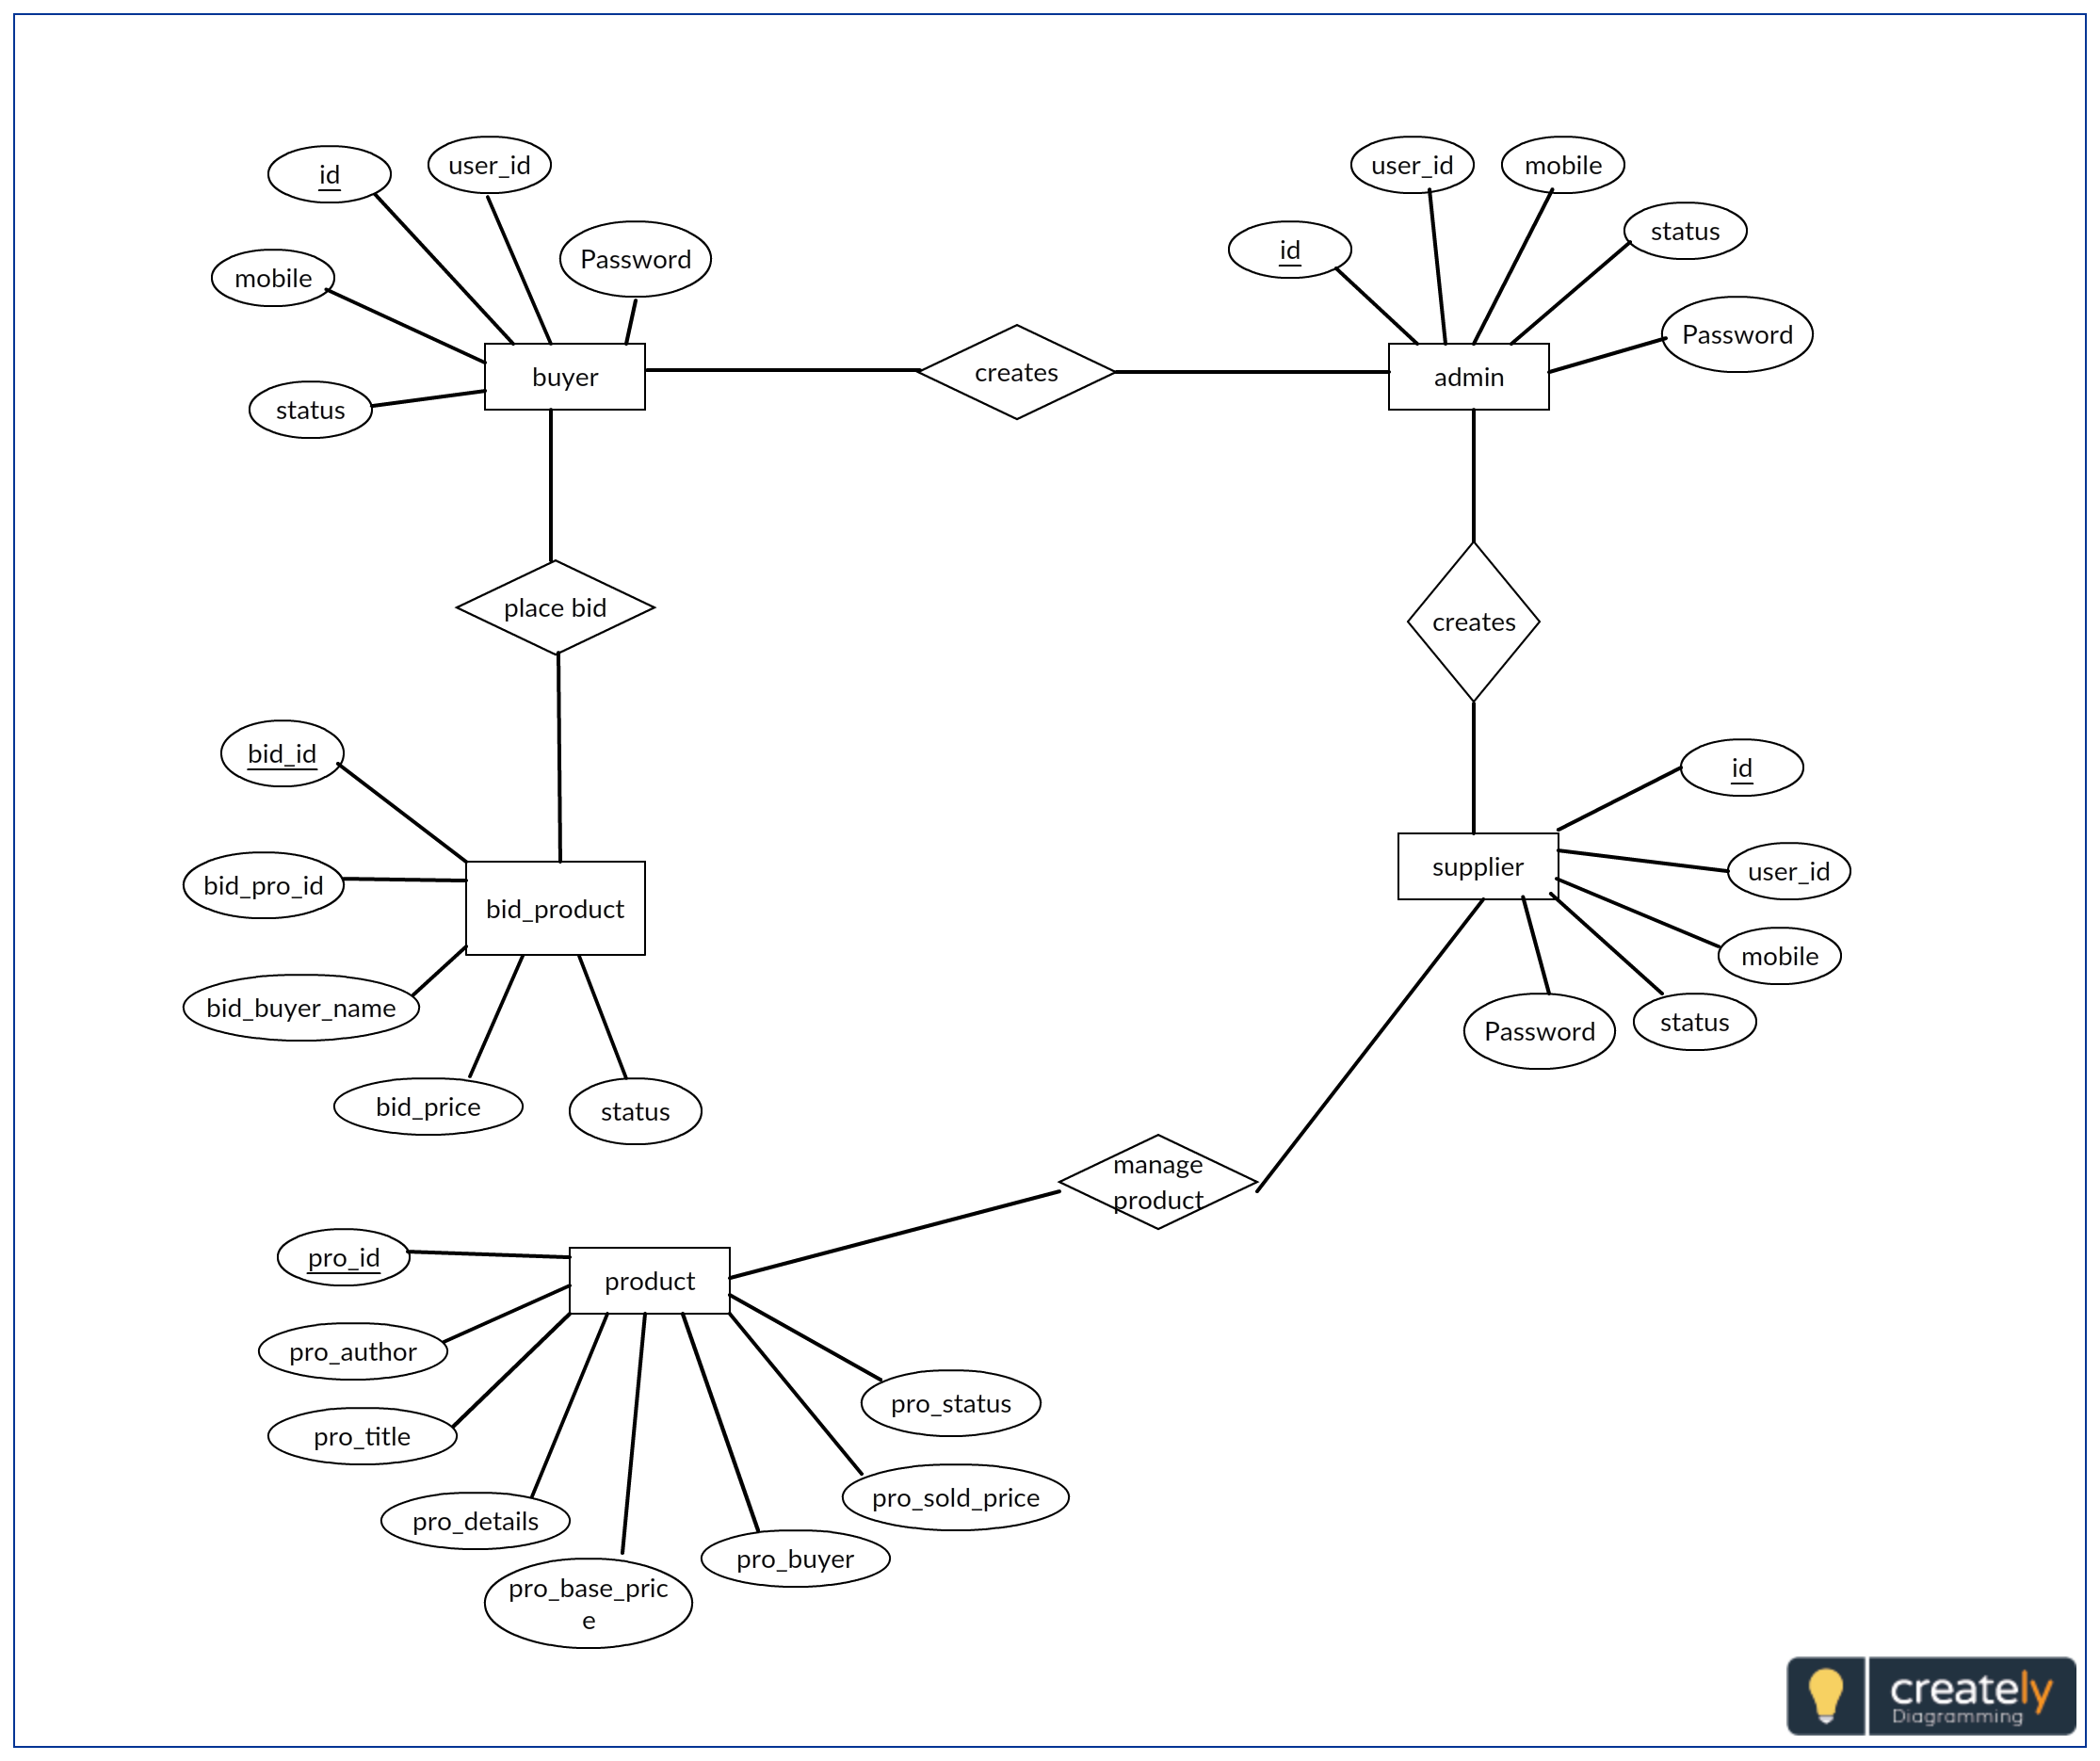 Entity Relationship Diagram Example For Auctioning System Click On The Image To Edit Online And Download As Png Imag Relationship Diagram Diagram Relationship